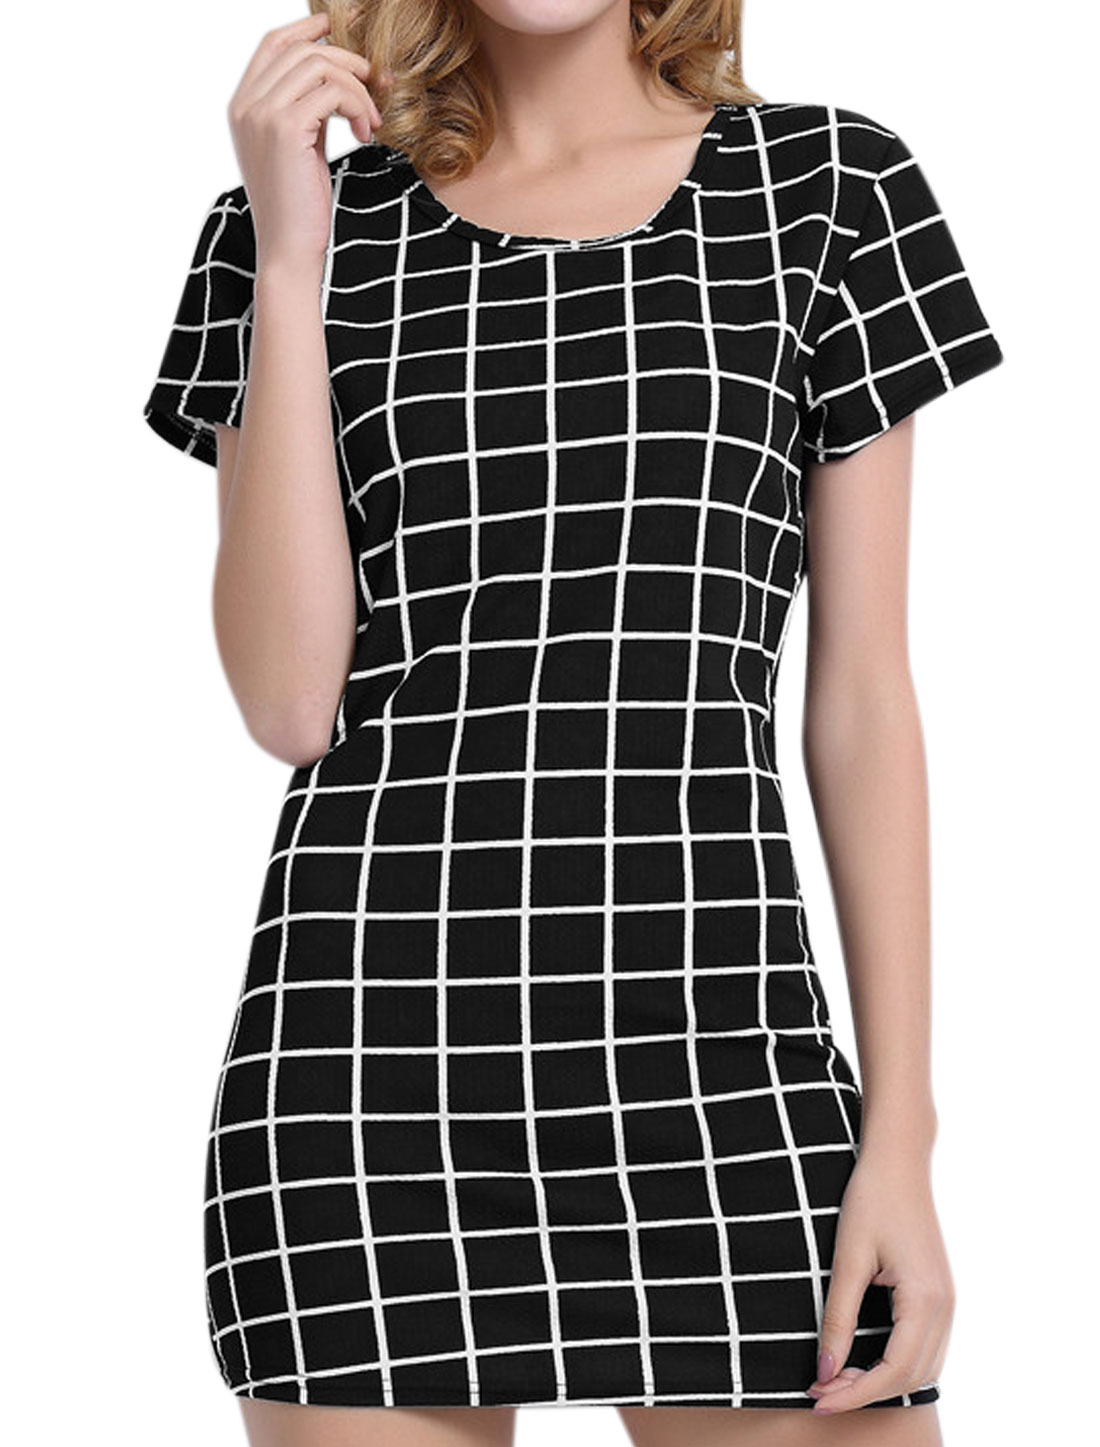 Women Short Sleeves Round Neck Checks Sheath Dress Black M